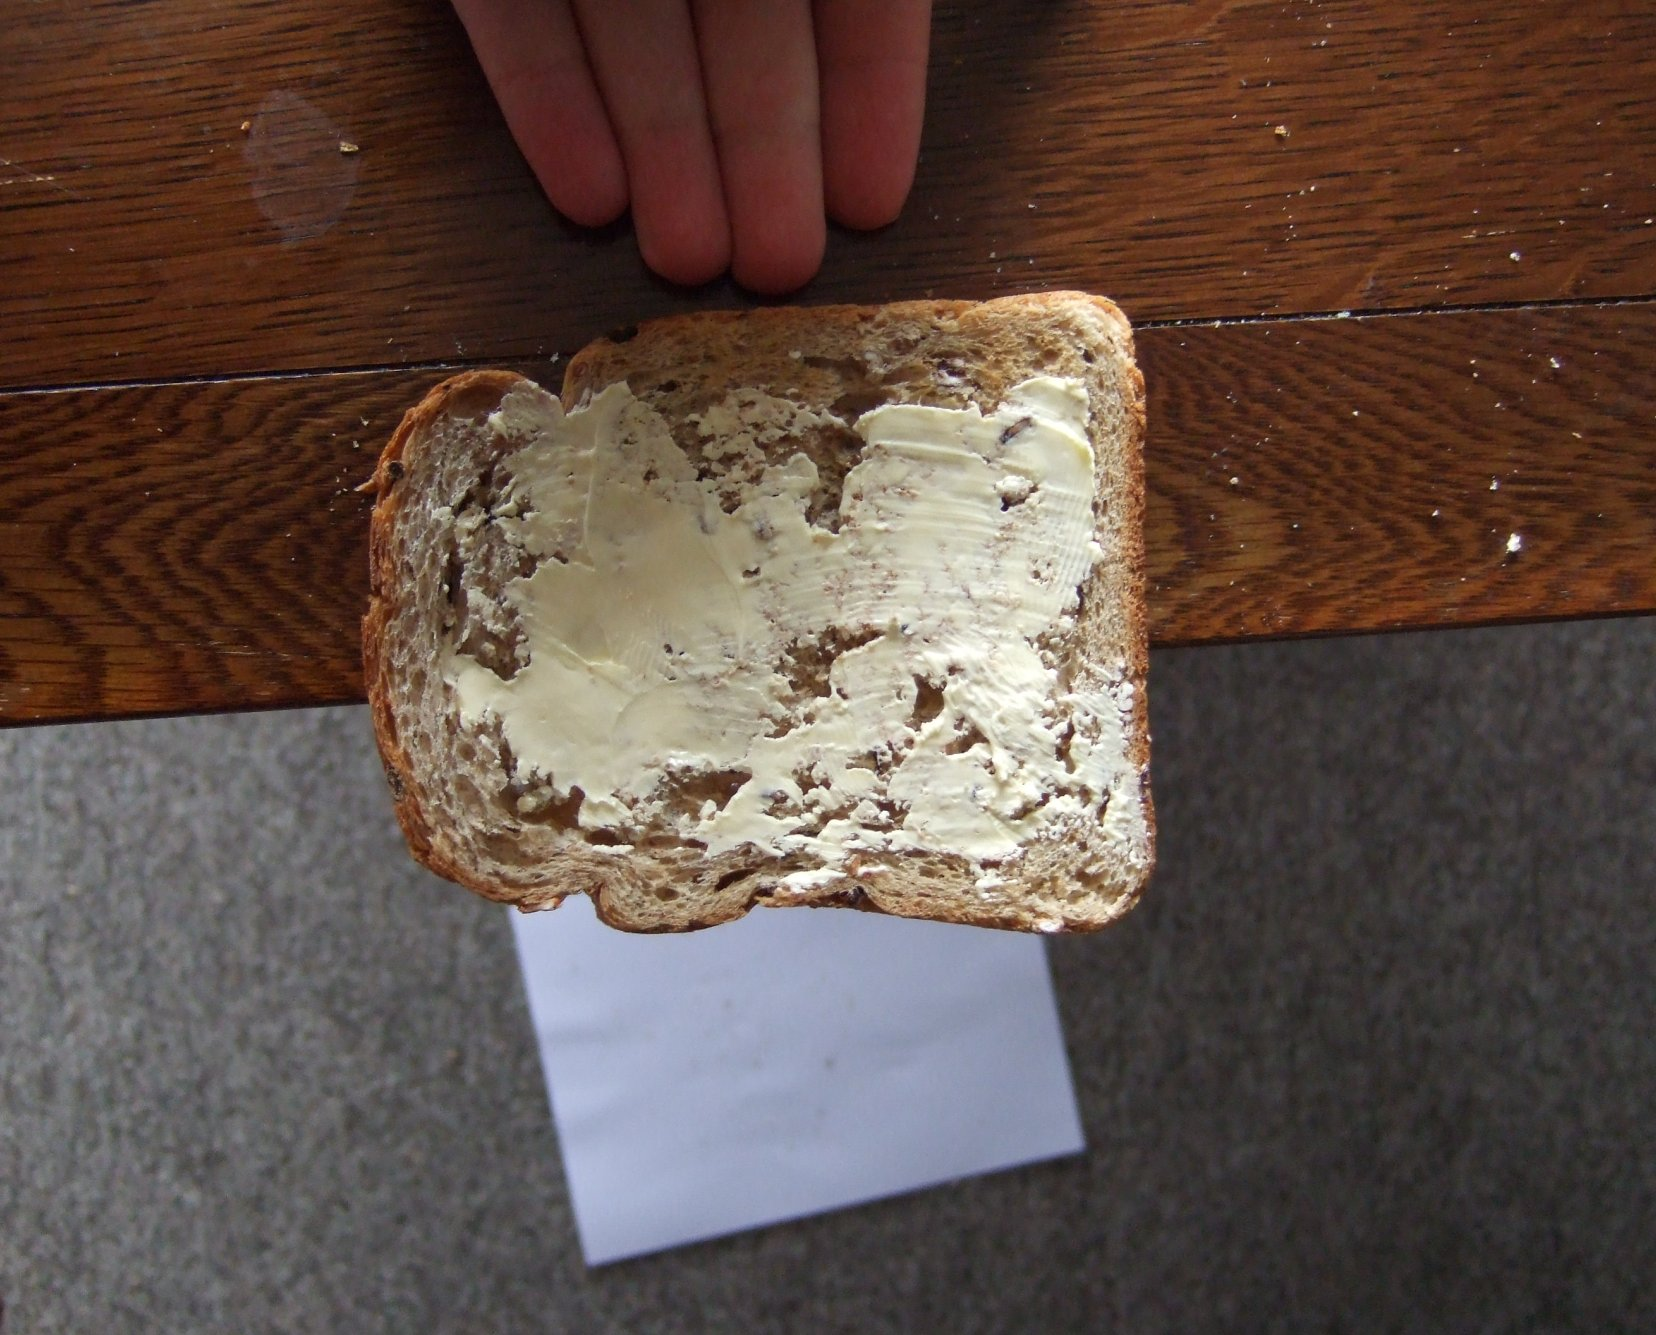 Push the toast off the table at a nice steady speed.